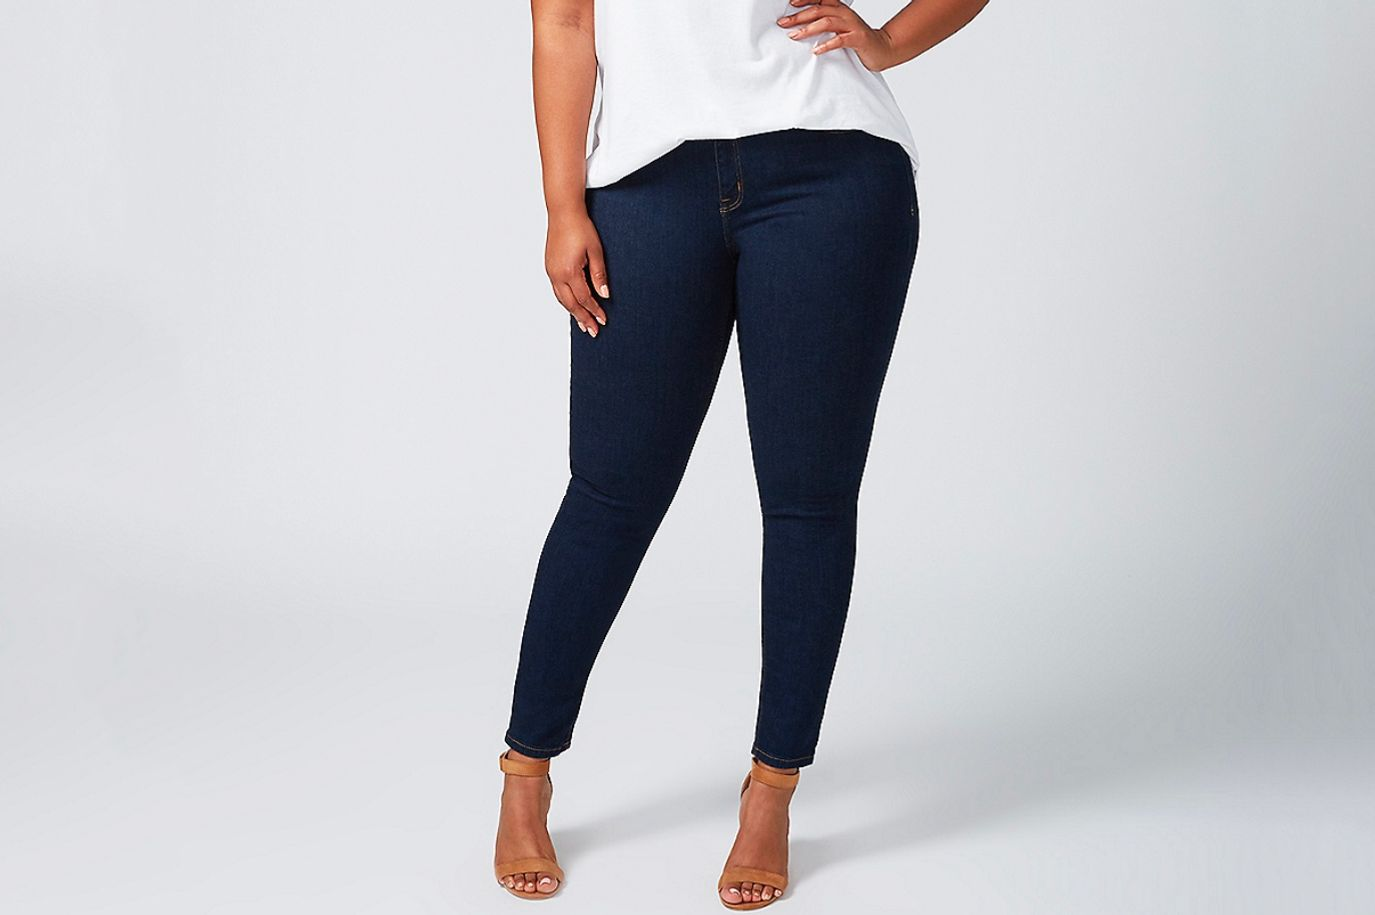 Womens Leggings Full Length Plus Sizes 8 10 12 14 16 18 20 22 26 28 30